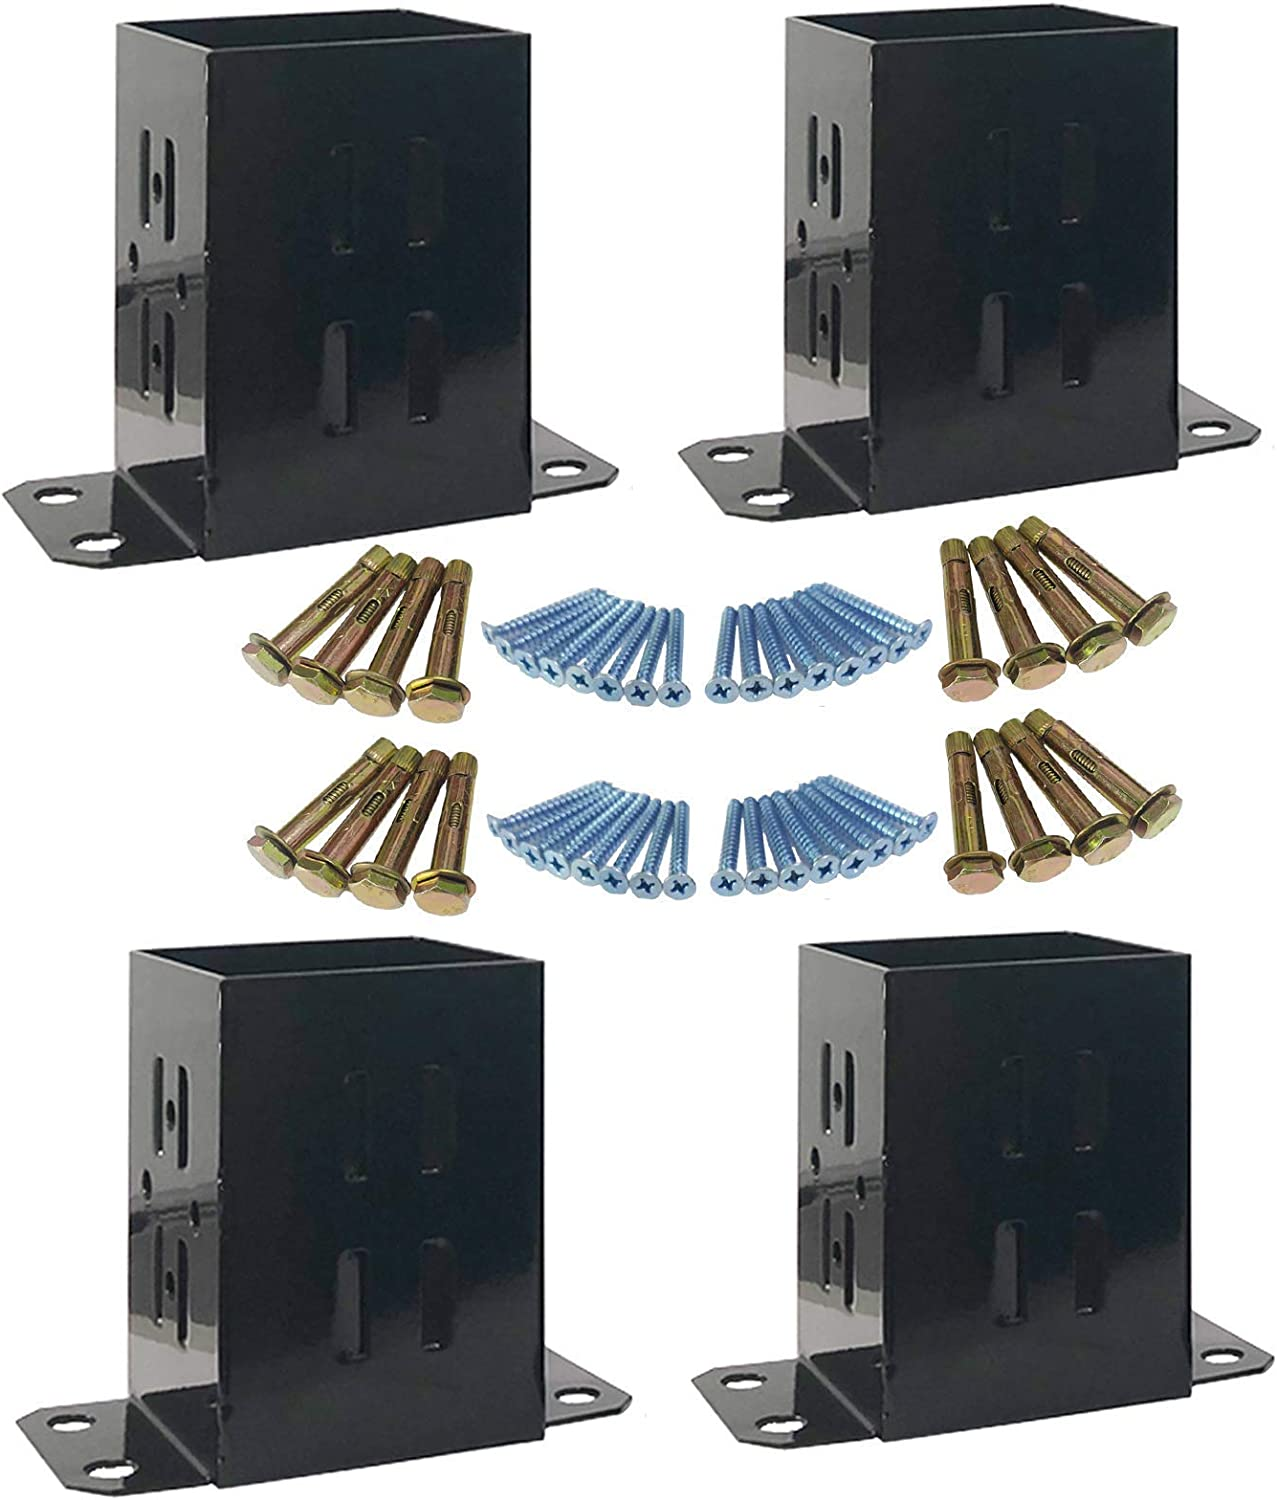 JH Discount is also underway 4x4 Wood Fence Post Brackets Powder-Coated Safety and trust Duty Base Heavy